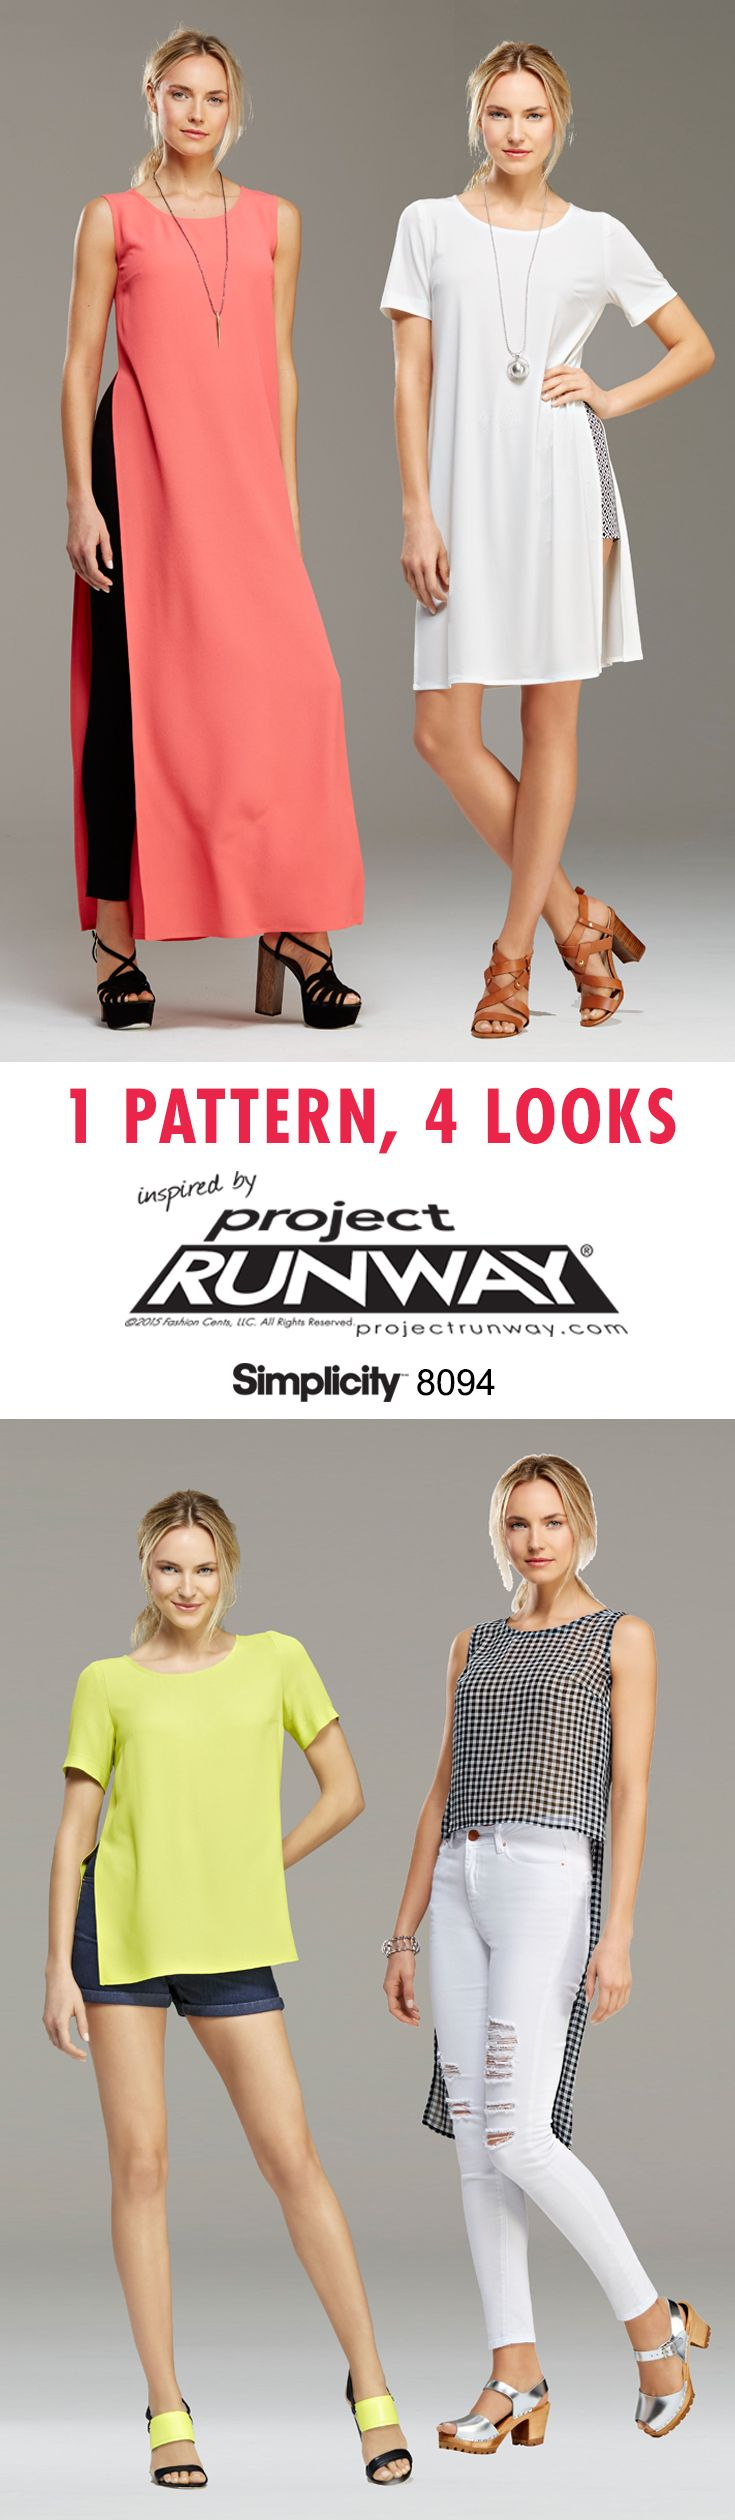 Sew a knit tunic that can be worn in a variation of lengths, with or without slits and pockets with Simplicity pattern 8094 inspired by Project Runway! The pattern also includes shorts and leggings.